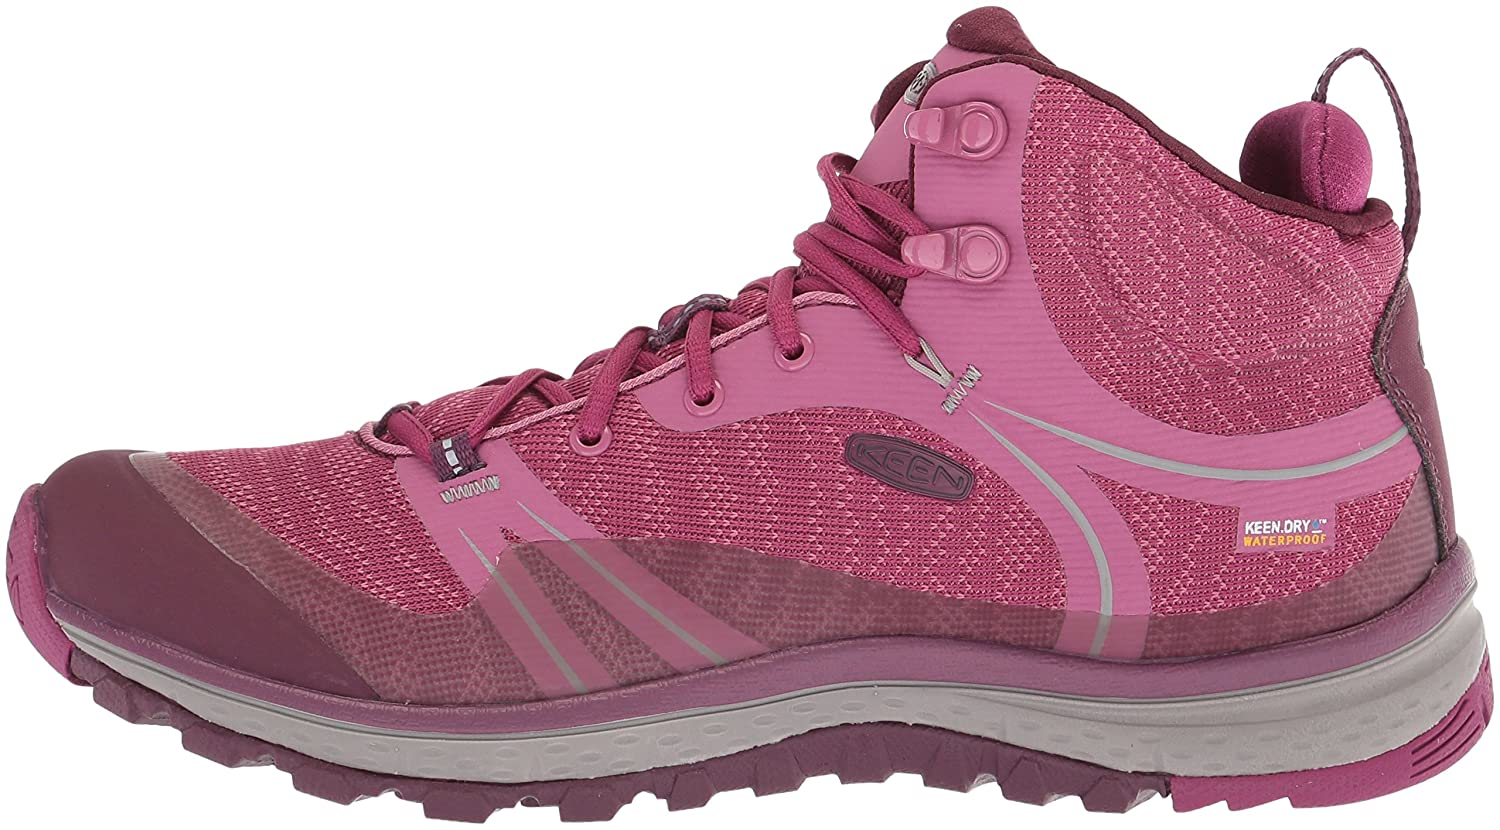 KEEN Damen Damen Damen Terradora Mid Wp-w High-top, Astral Aura Liberty, 42 EU  e8fa8e